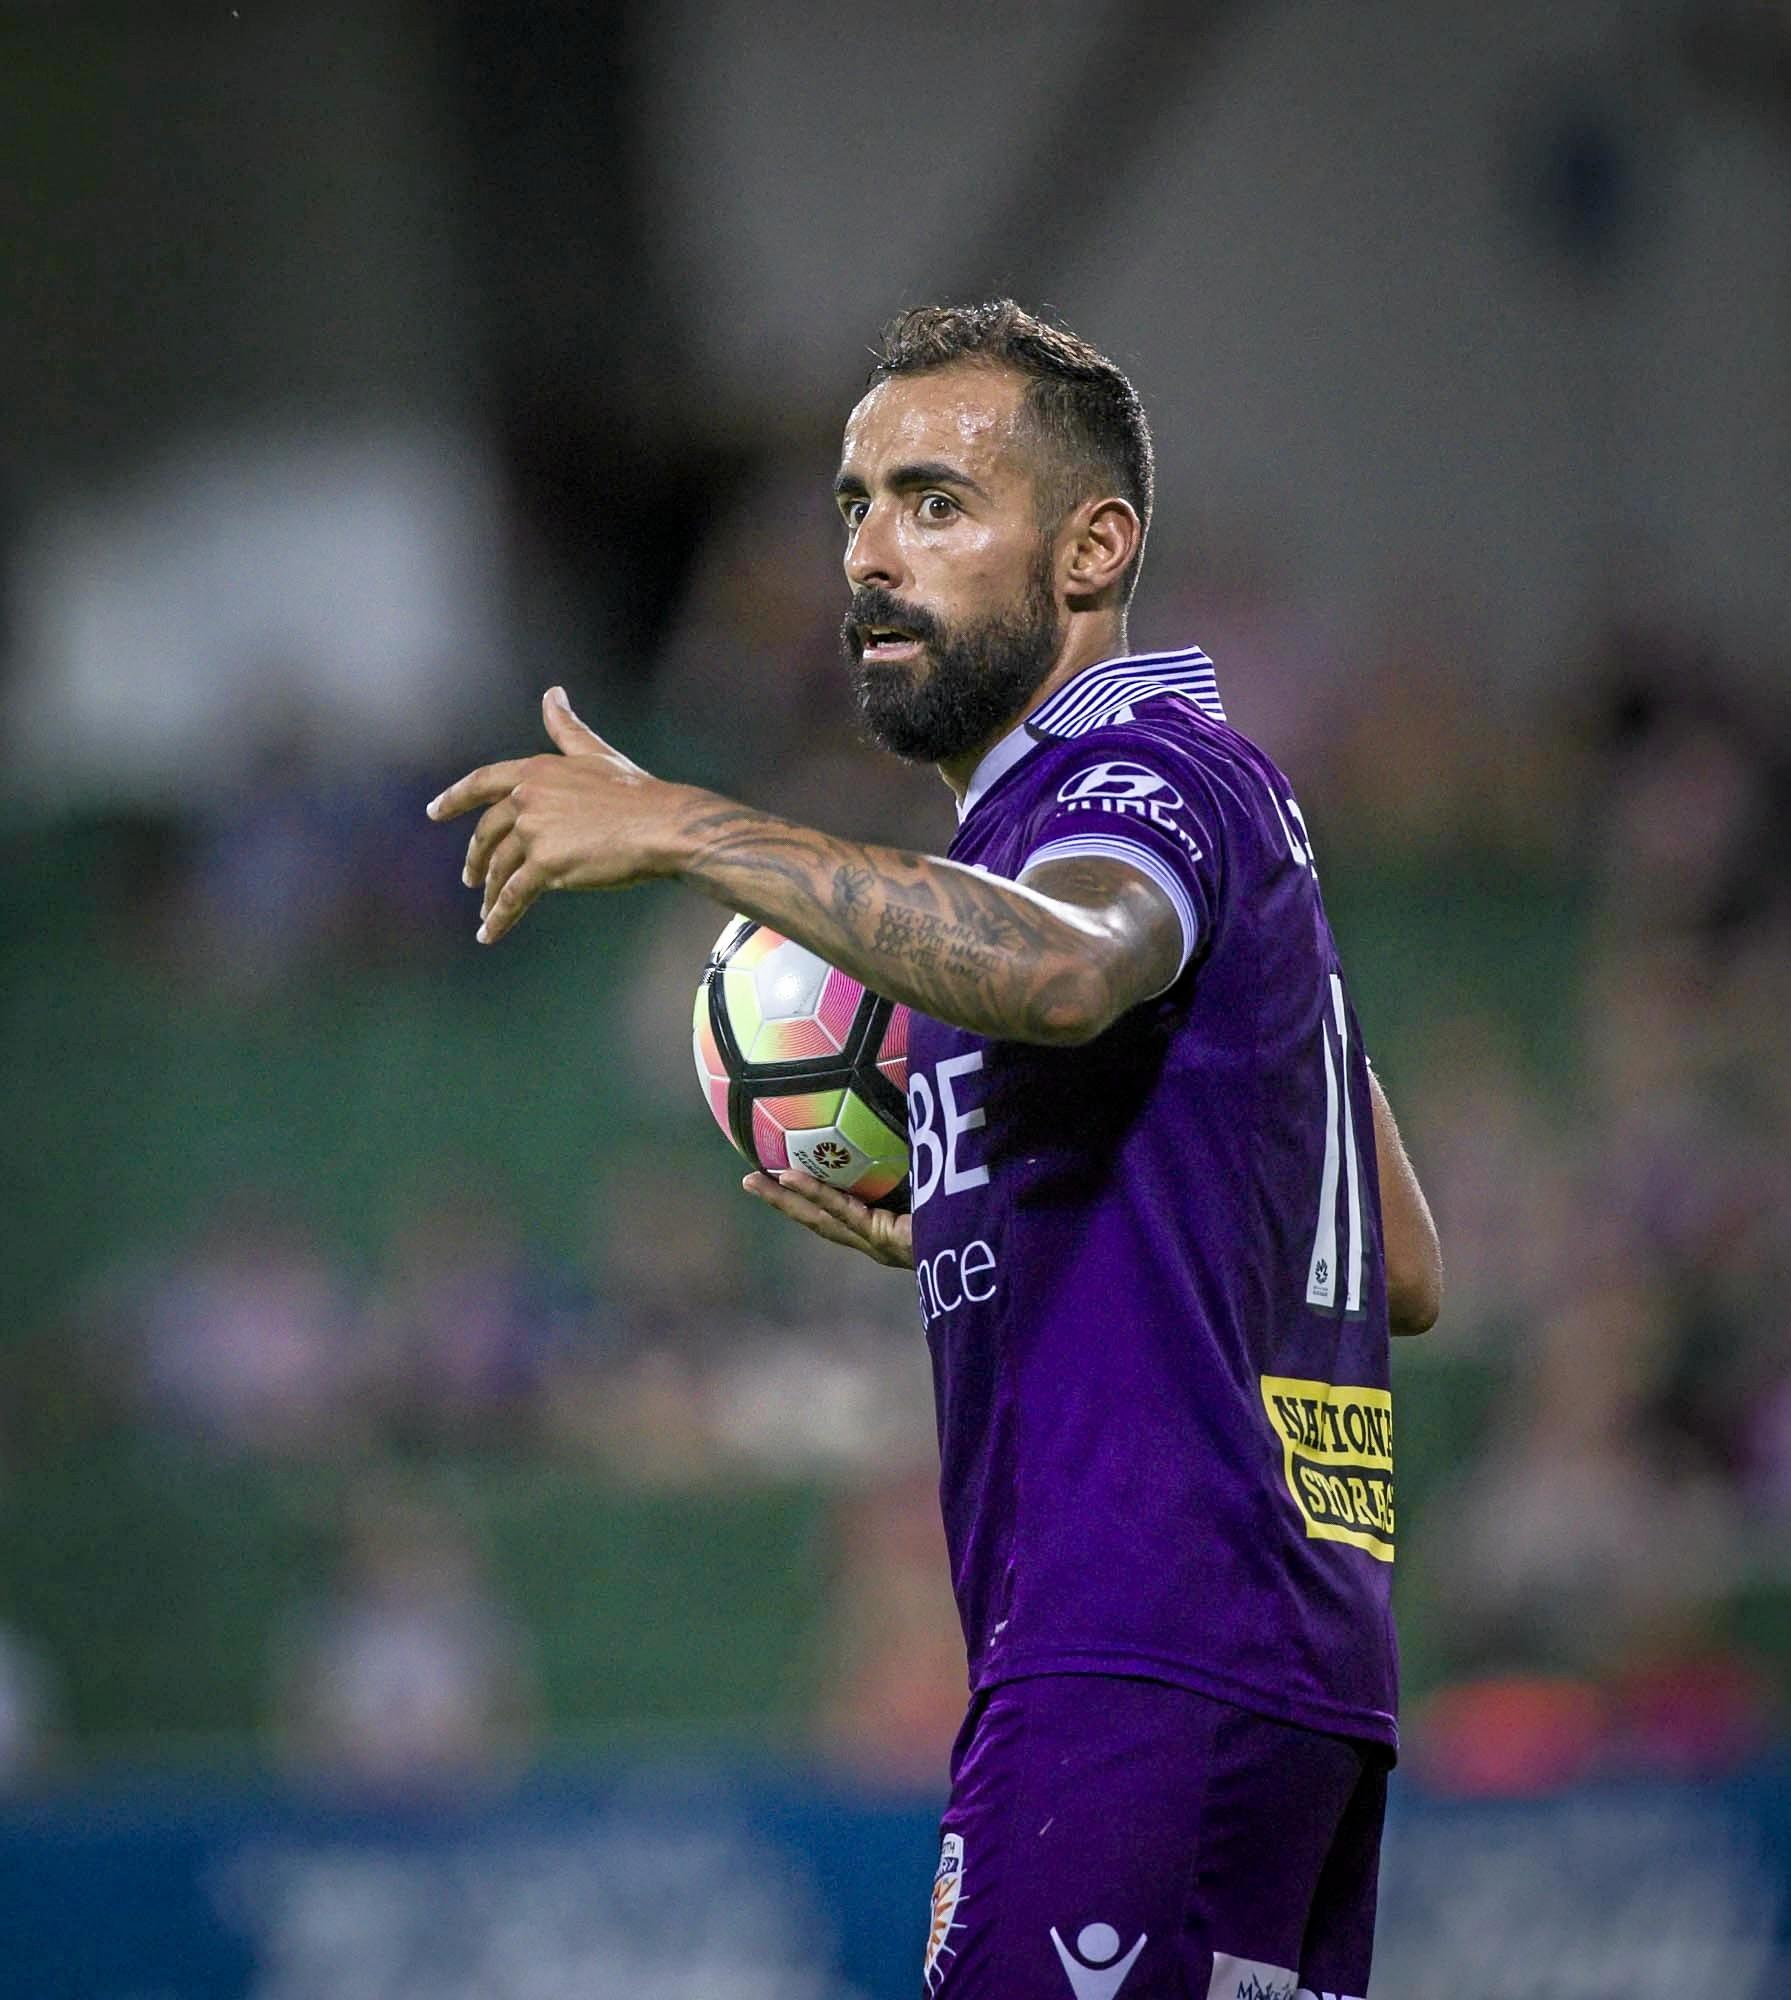 Diego Castro of the Perth Glory during the  A-League match between the Perth Glory and the Western Sydney Wanderers at nib Stadium in Perth, on Saturday, Feb 25, 2017.The Glory won the match 2-0. (AAP Image/Tony McDonough) NO ARCHIVING, EDITORIAL USE ONLY